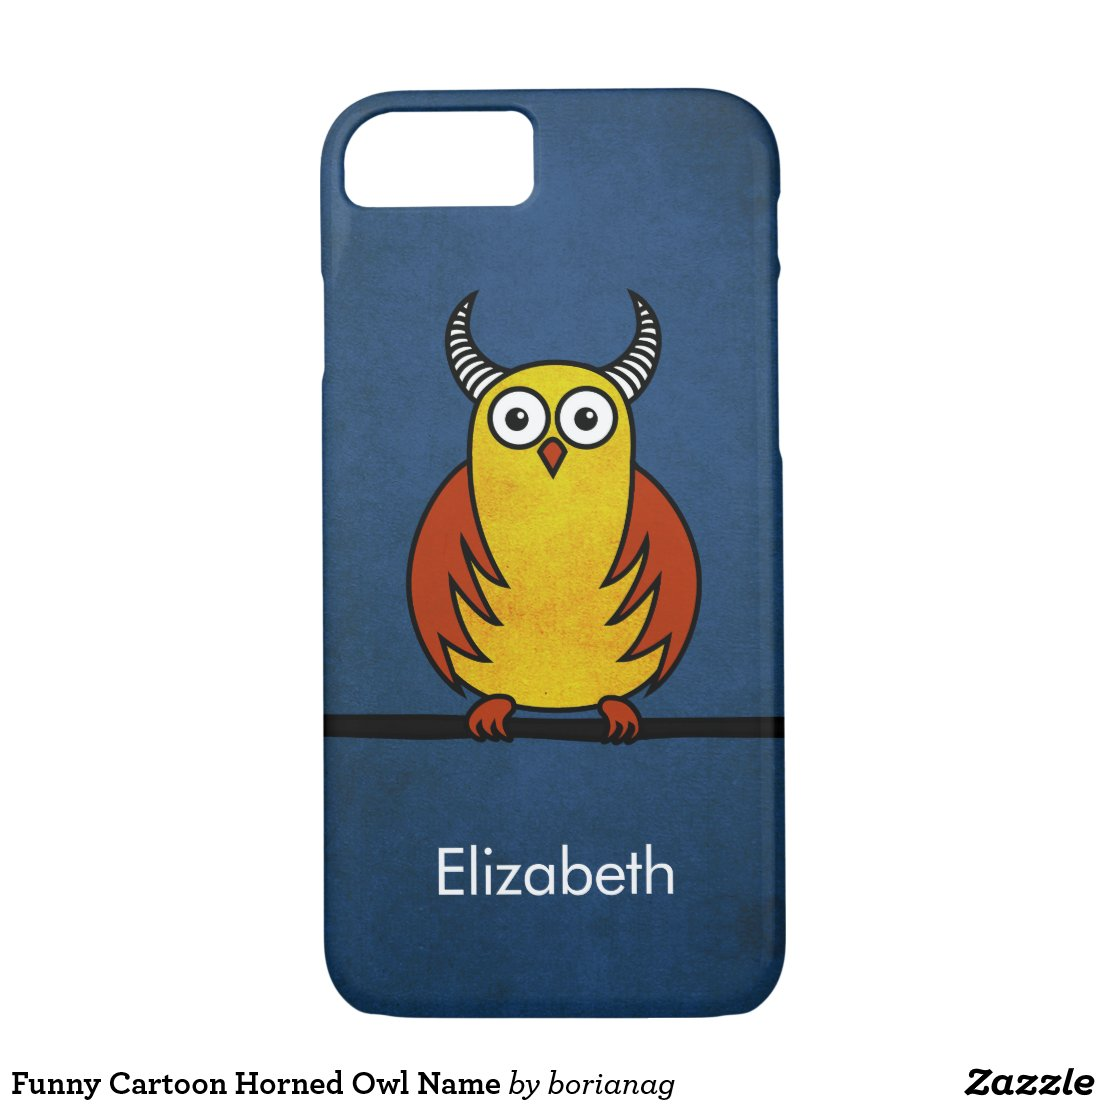 Customizable name iPhone case with a funny horned owl. This case can be customized for other devices, too.